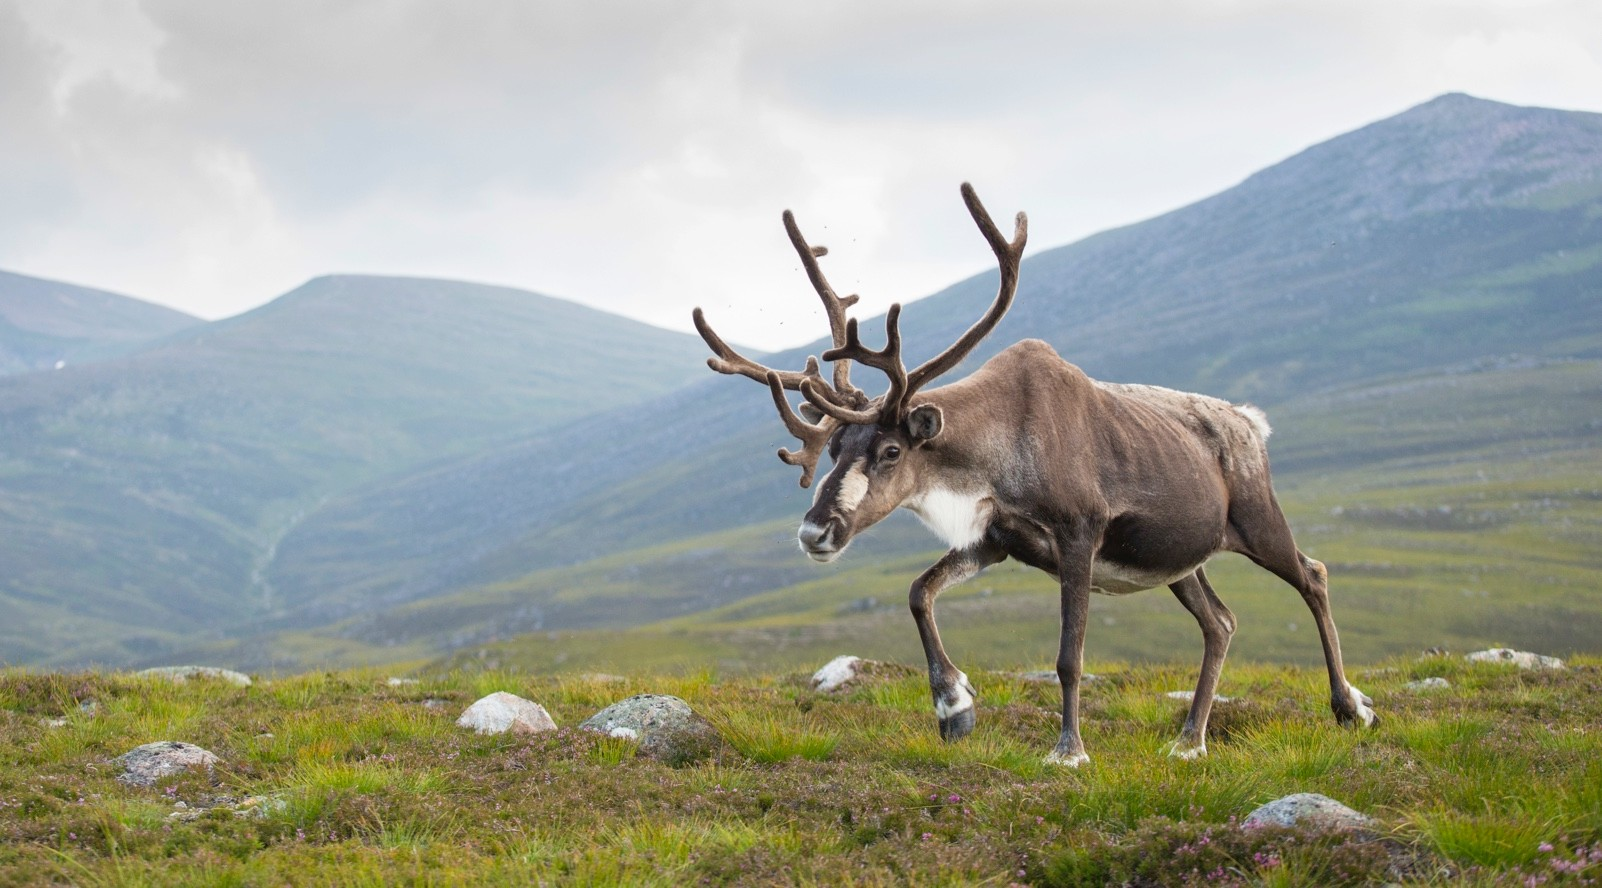 Reindeer (Rangifer tarandus) adult female, antlers in velvet, walking across upland moor, Cairngorms, Scotland, UK, August.